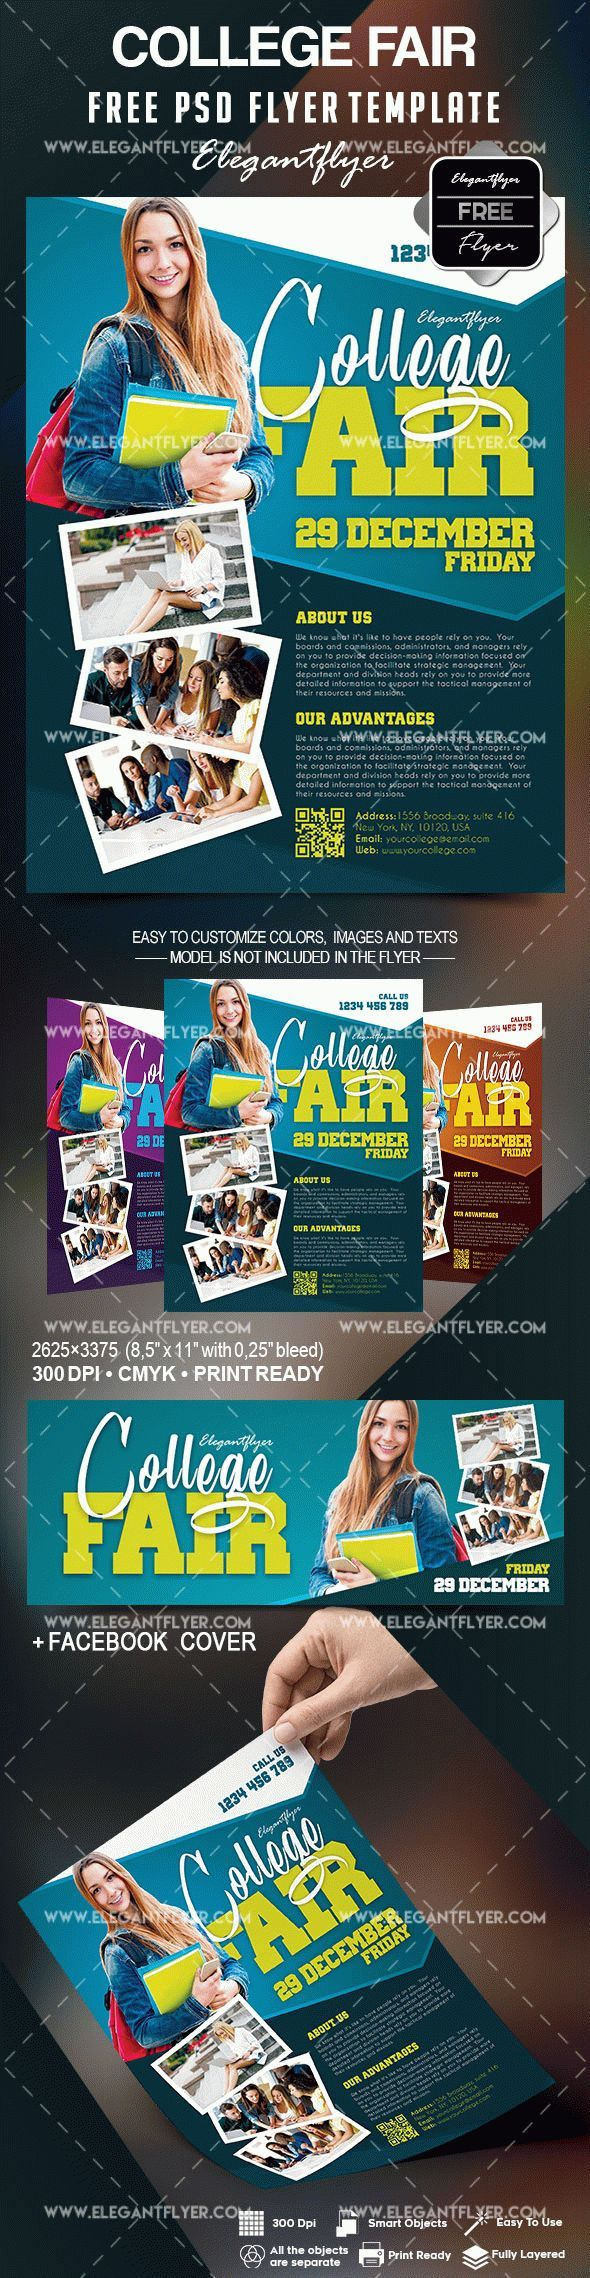 free college fair flyer template flayers pinterest flyer